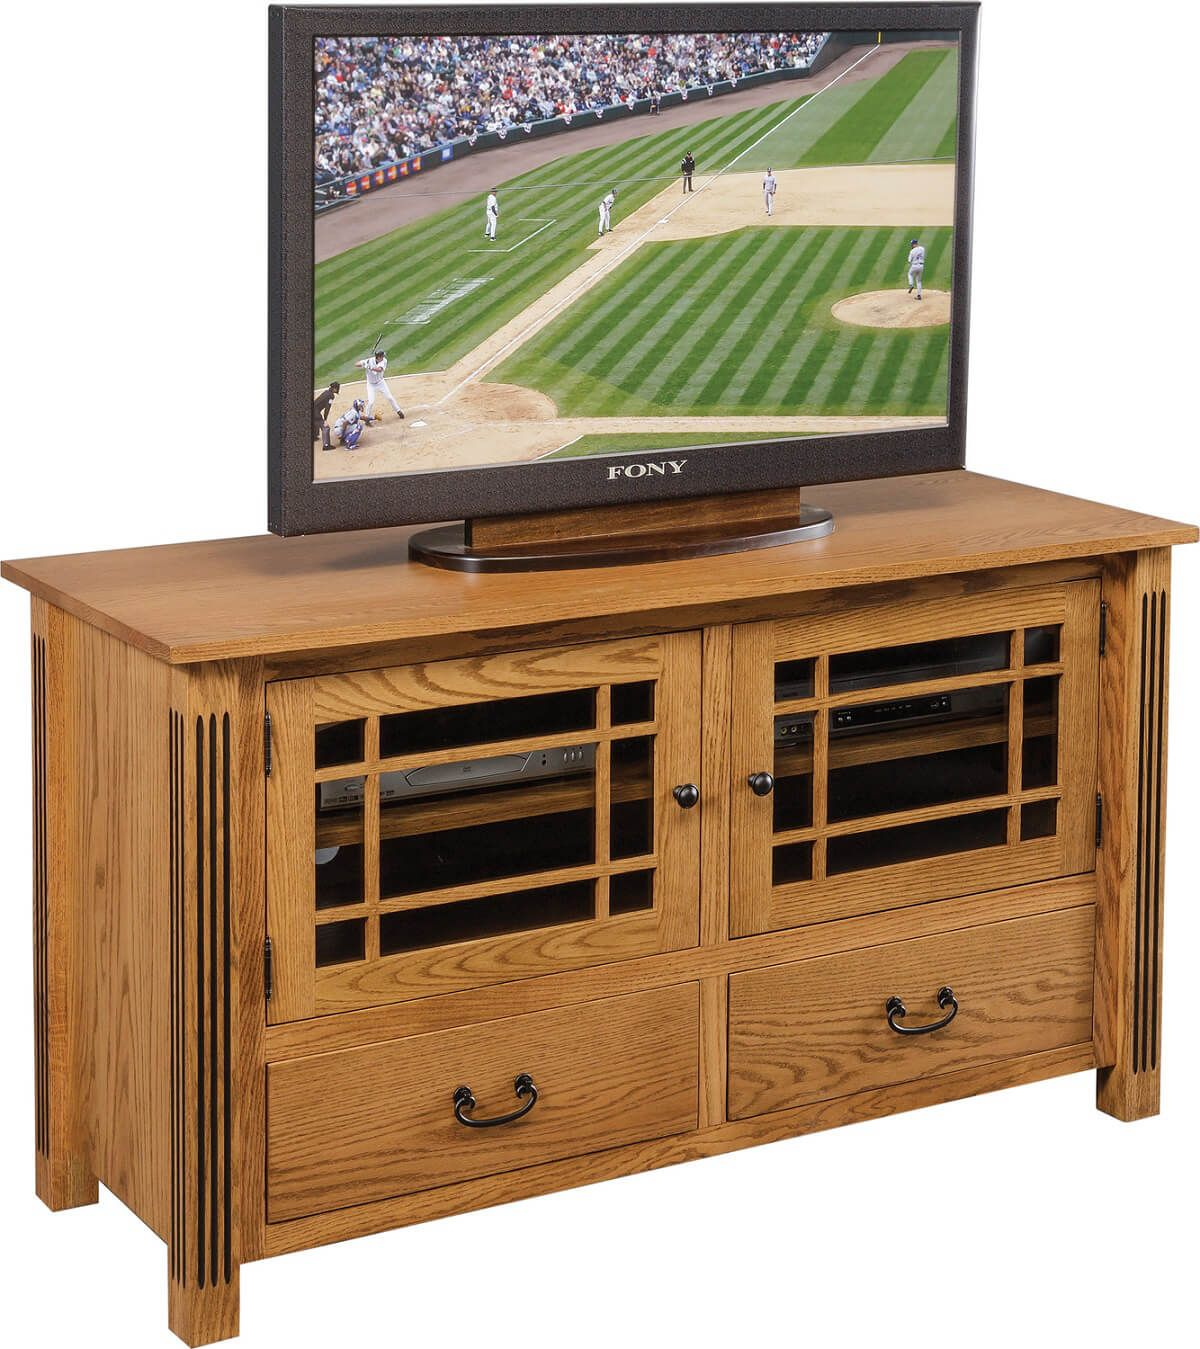 Indian Hill TV Stand in Oak